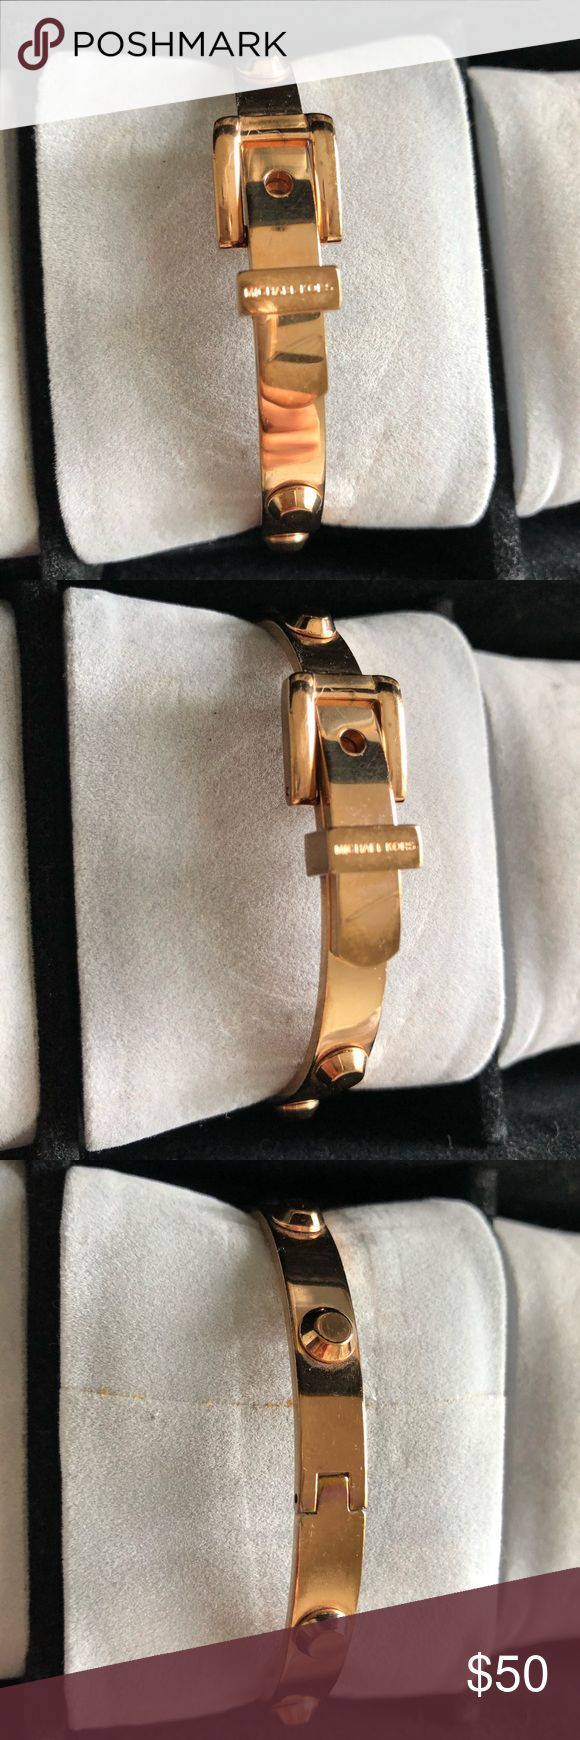 Michael Kors Studded Buckle Bracelet Michael Kors studded buckle bracelet in rose gold. Lightly tarnished on the side opposite of buckle. Scratches all around from normal wear. Three notches to adjust size. Michael Kors Jewelry Bracelets